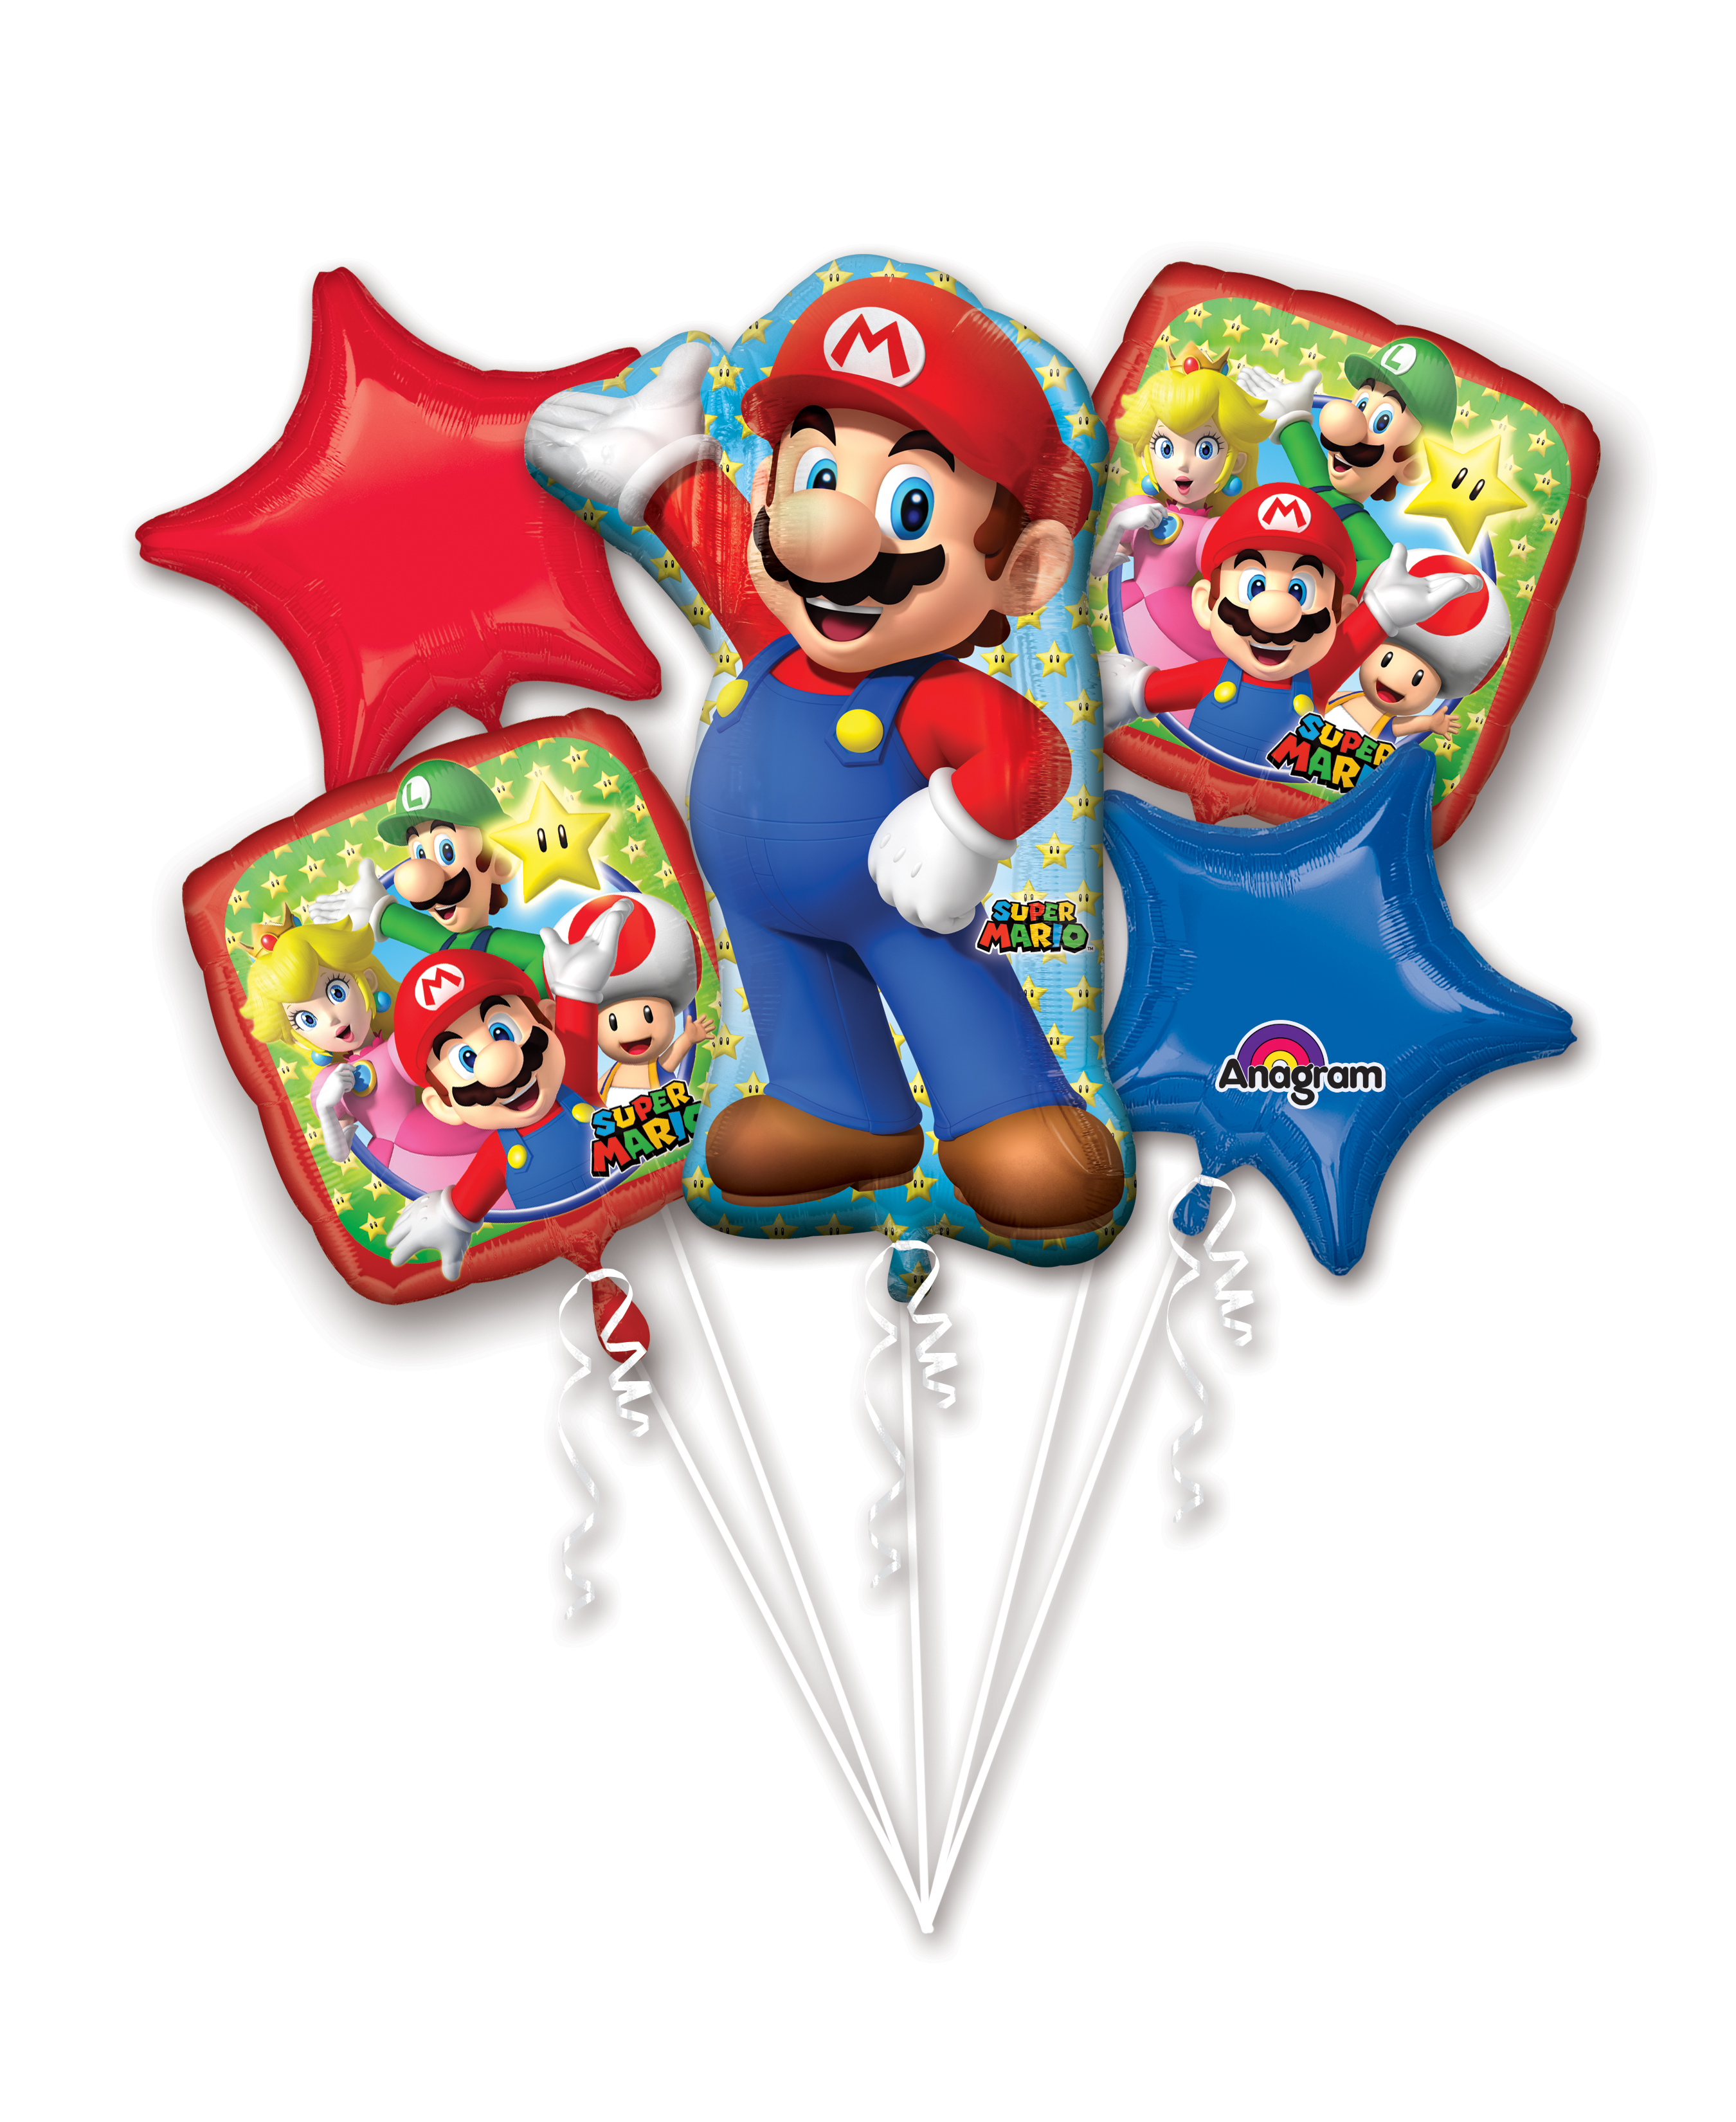 Bouquet Mario Bros Balloon Packaged